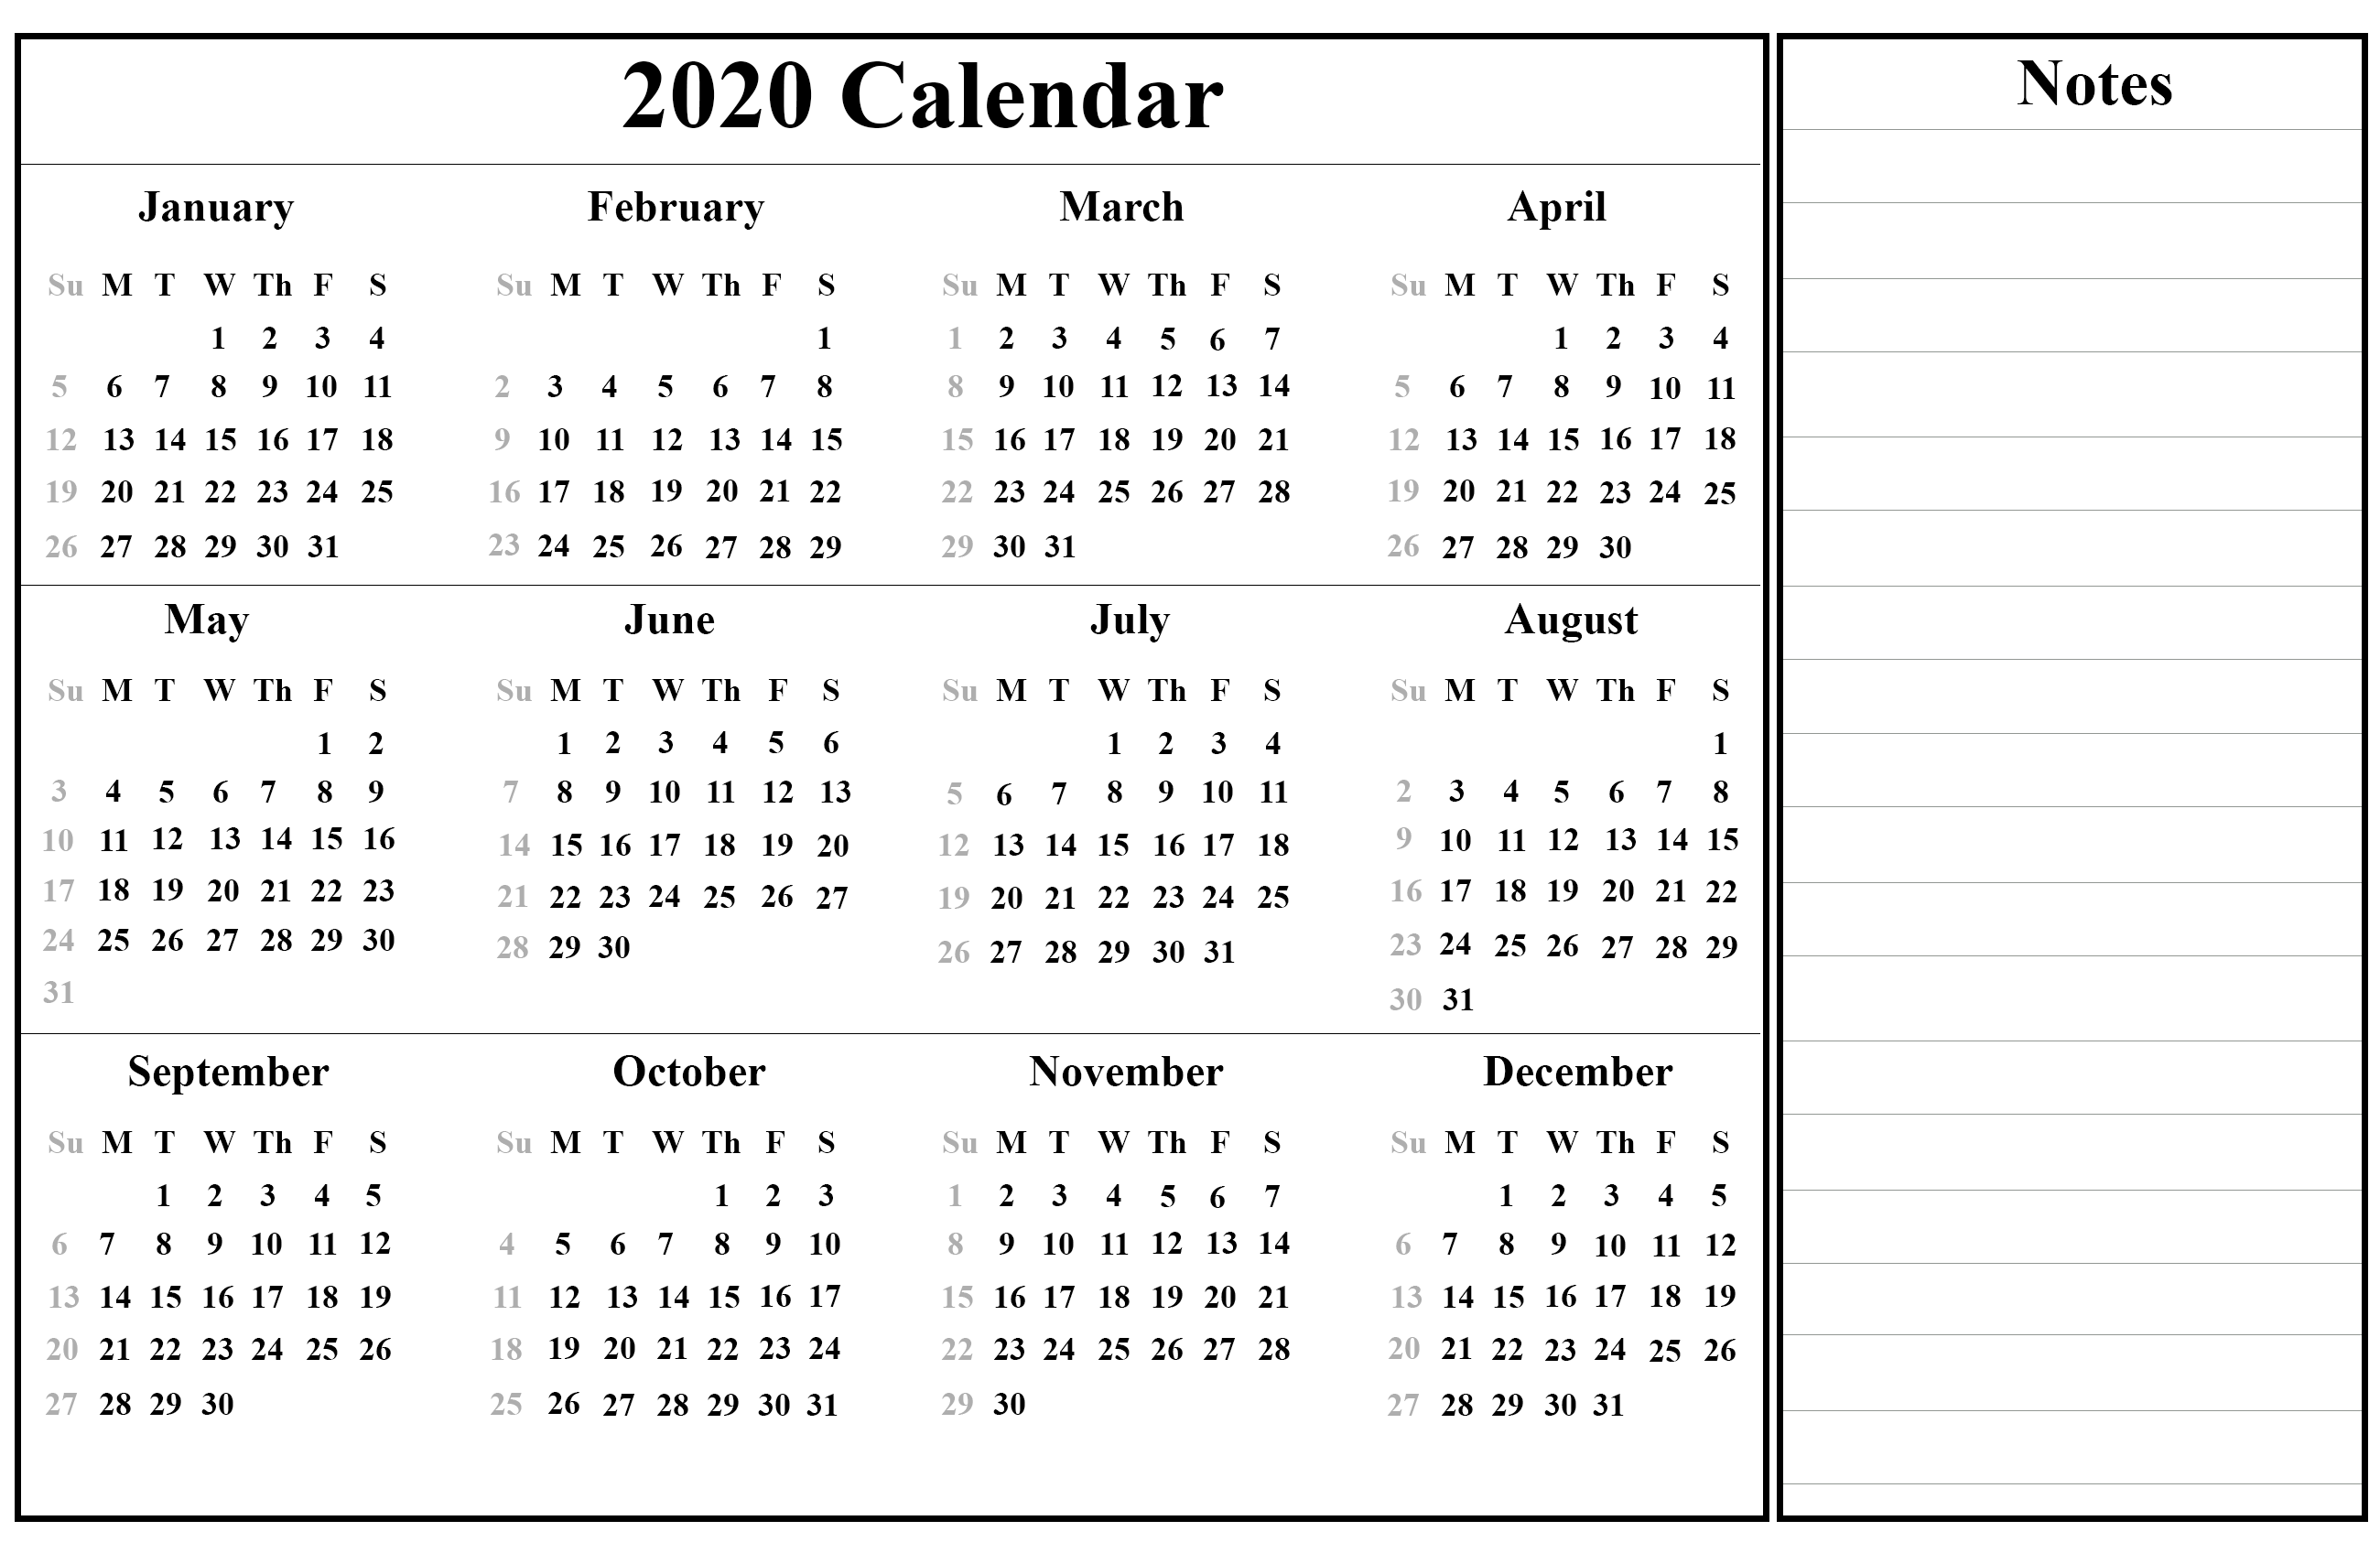 Calendar 2020 February And March.Printable Yearly Calendar 2020 Template With Holidays Pdf Word